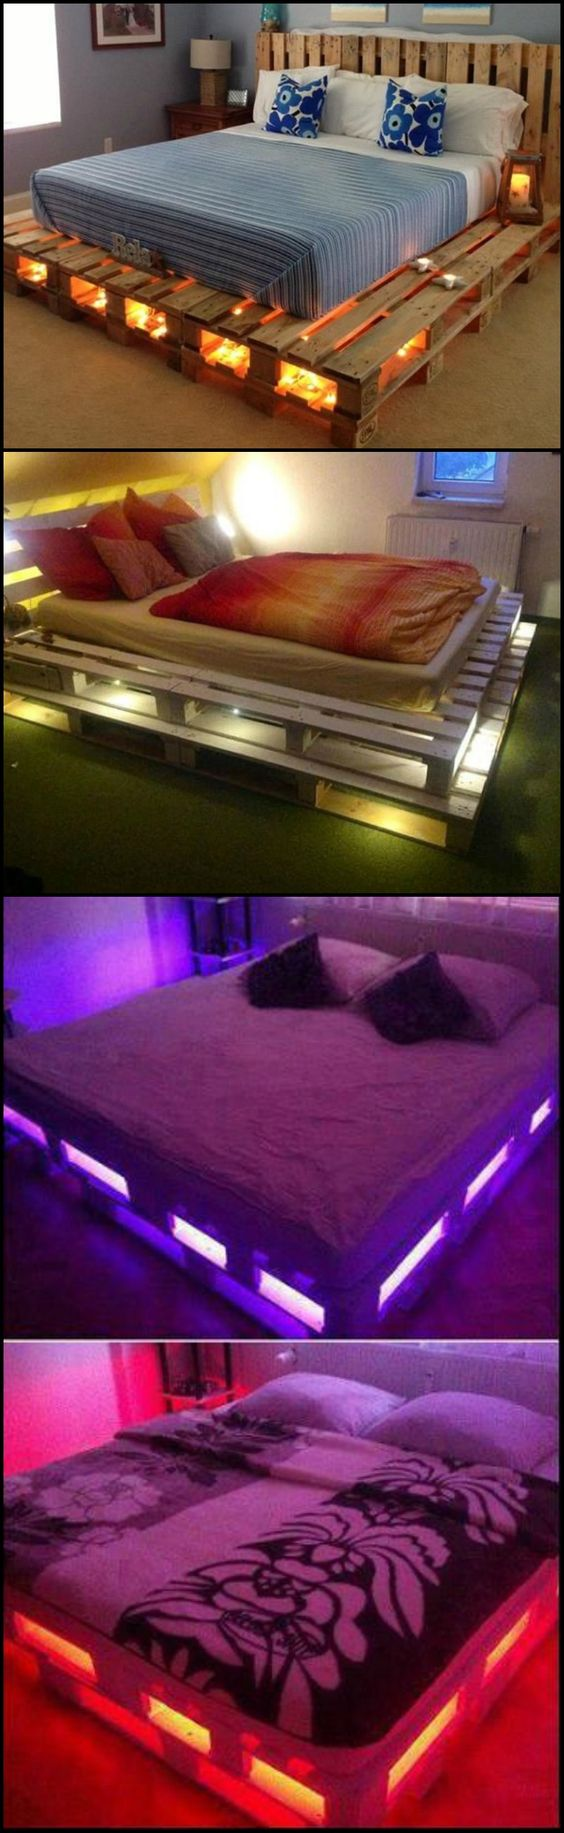 Diy Pallet Bed 7 - Amazing DIY Pallet Bed Ideas